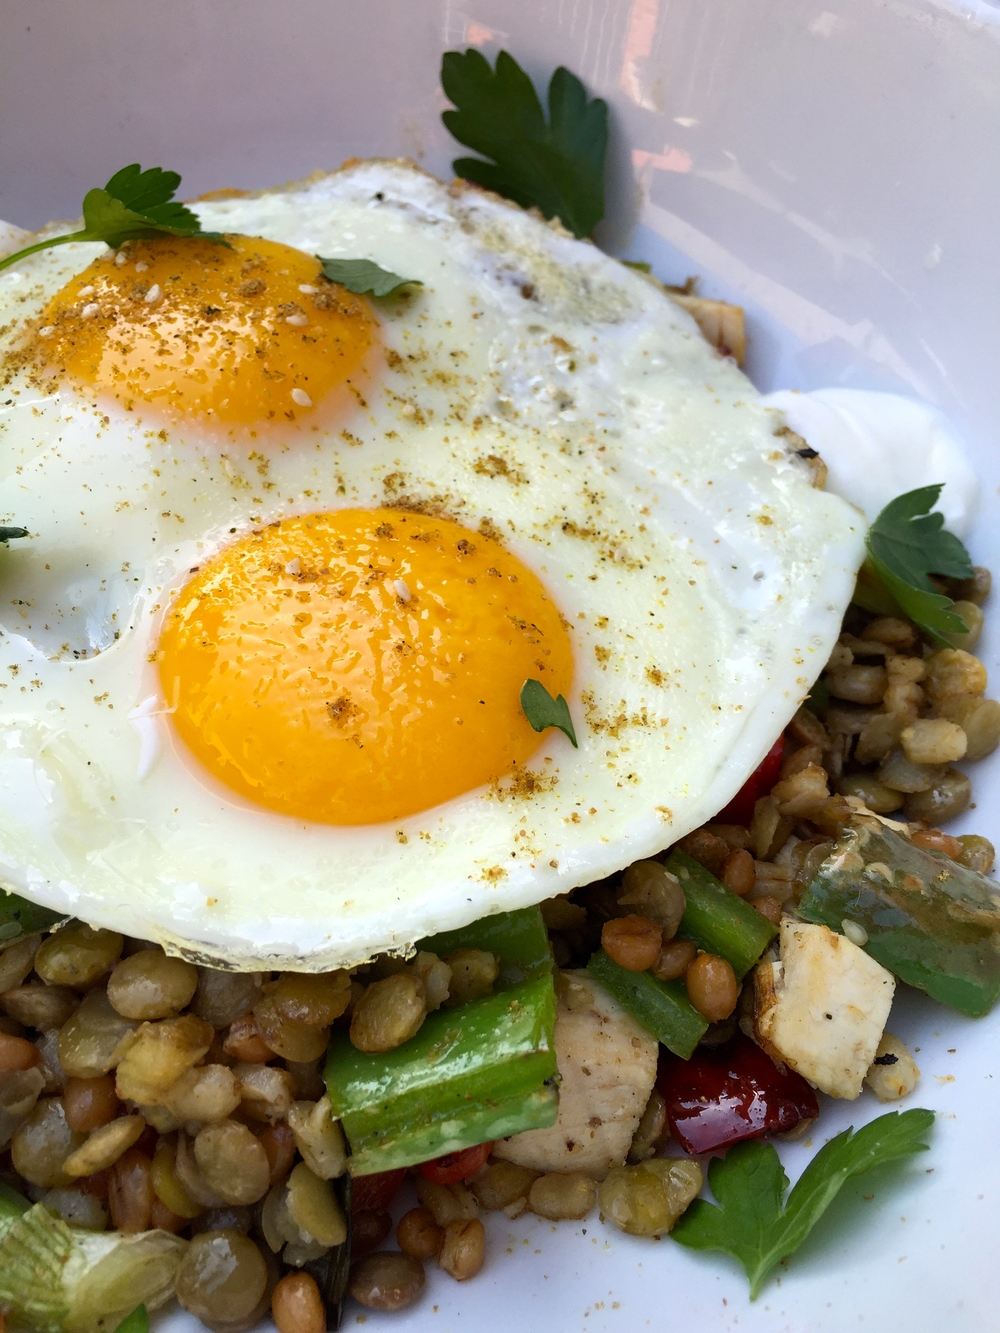 Jerusalem bowl with warm wheat berries, lentils and barley, Zahtar chicken, roasted green chiles, and two fried eggs.